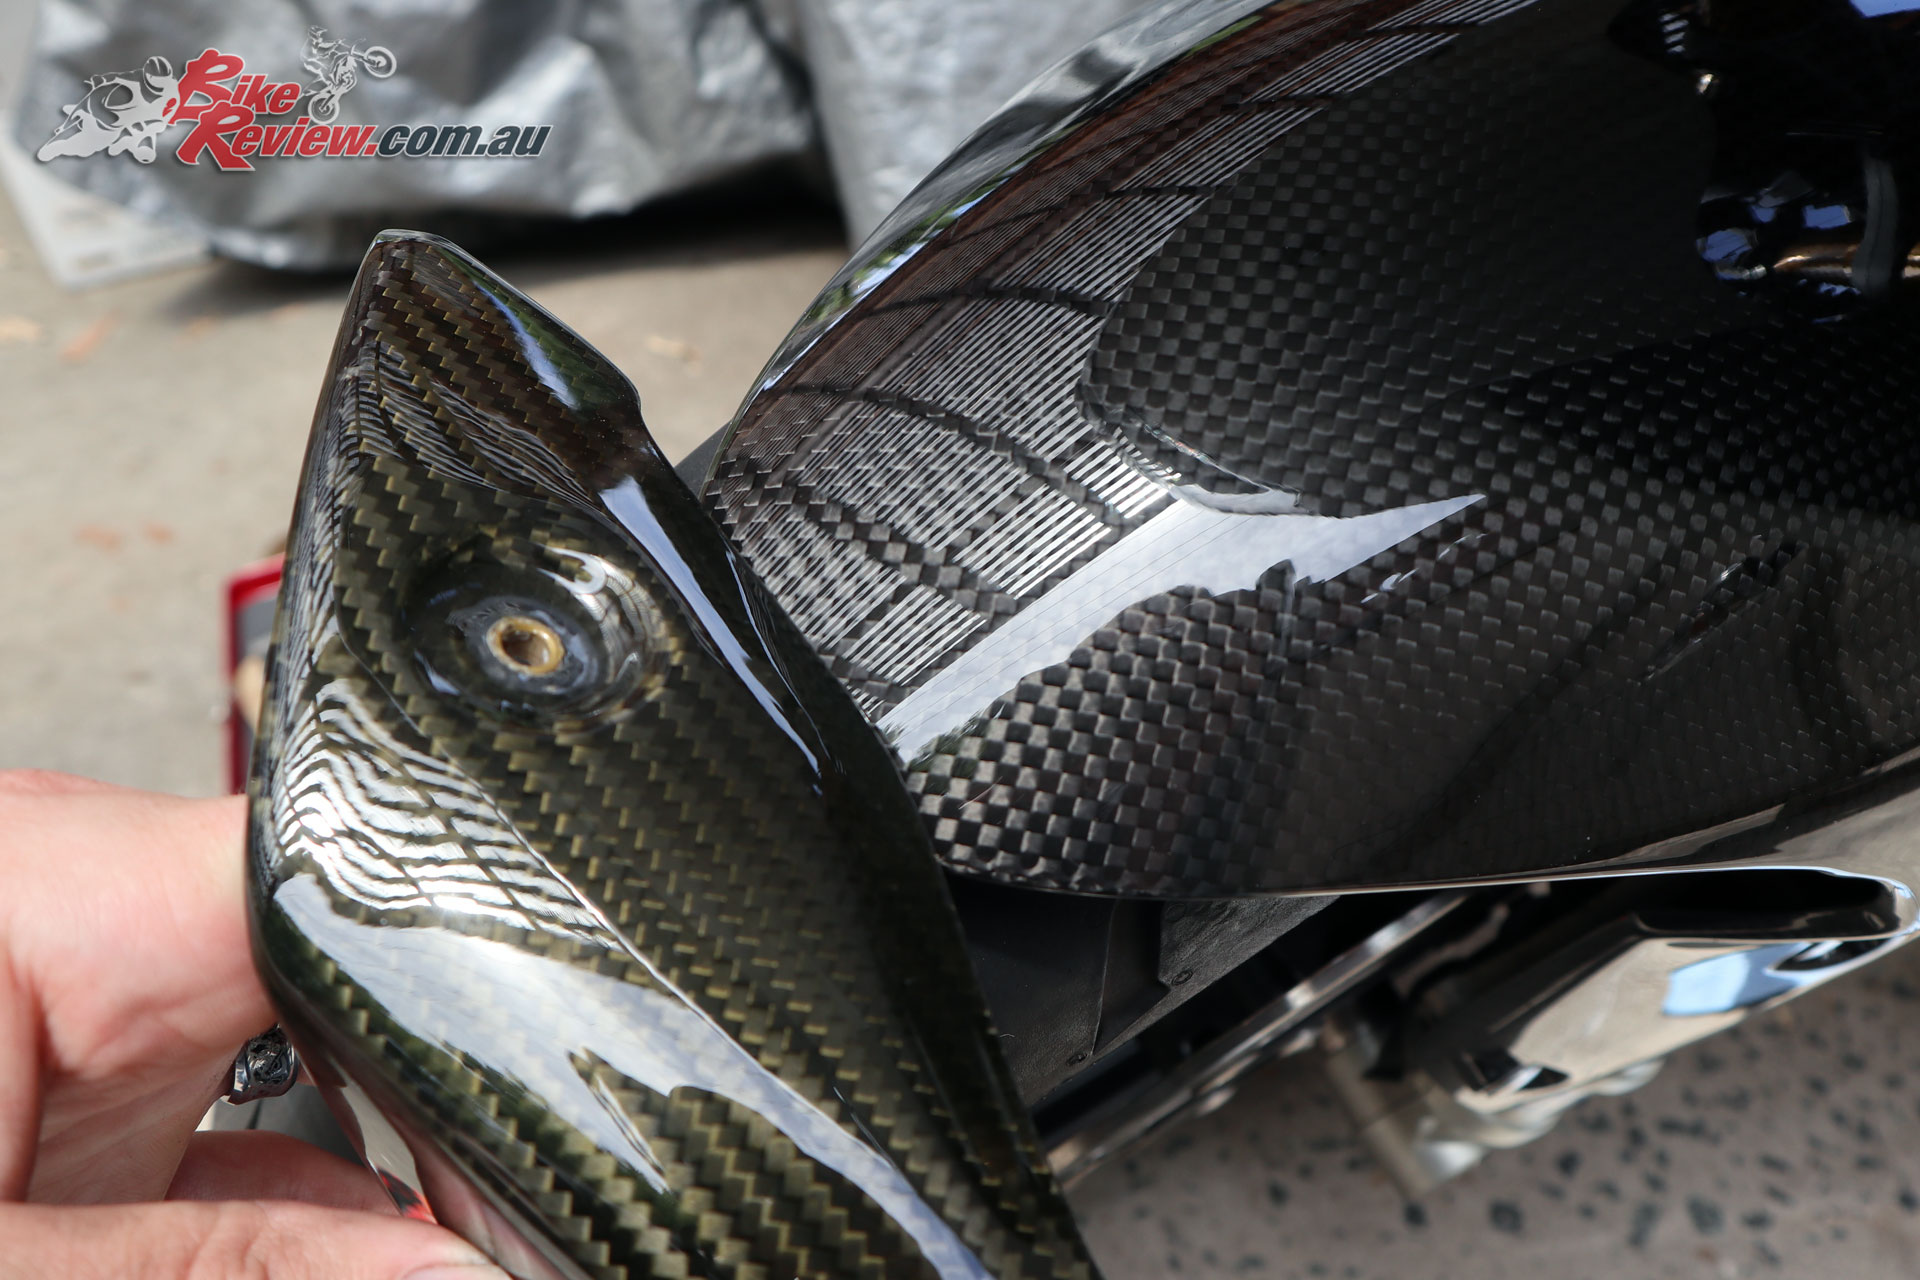 You can see how the eBay special carbon-fibre has not aged well, while the Triumph genuine looks like new